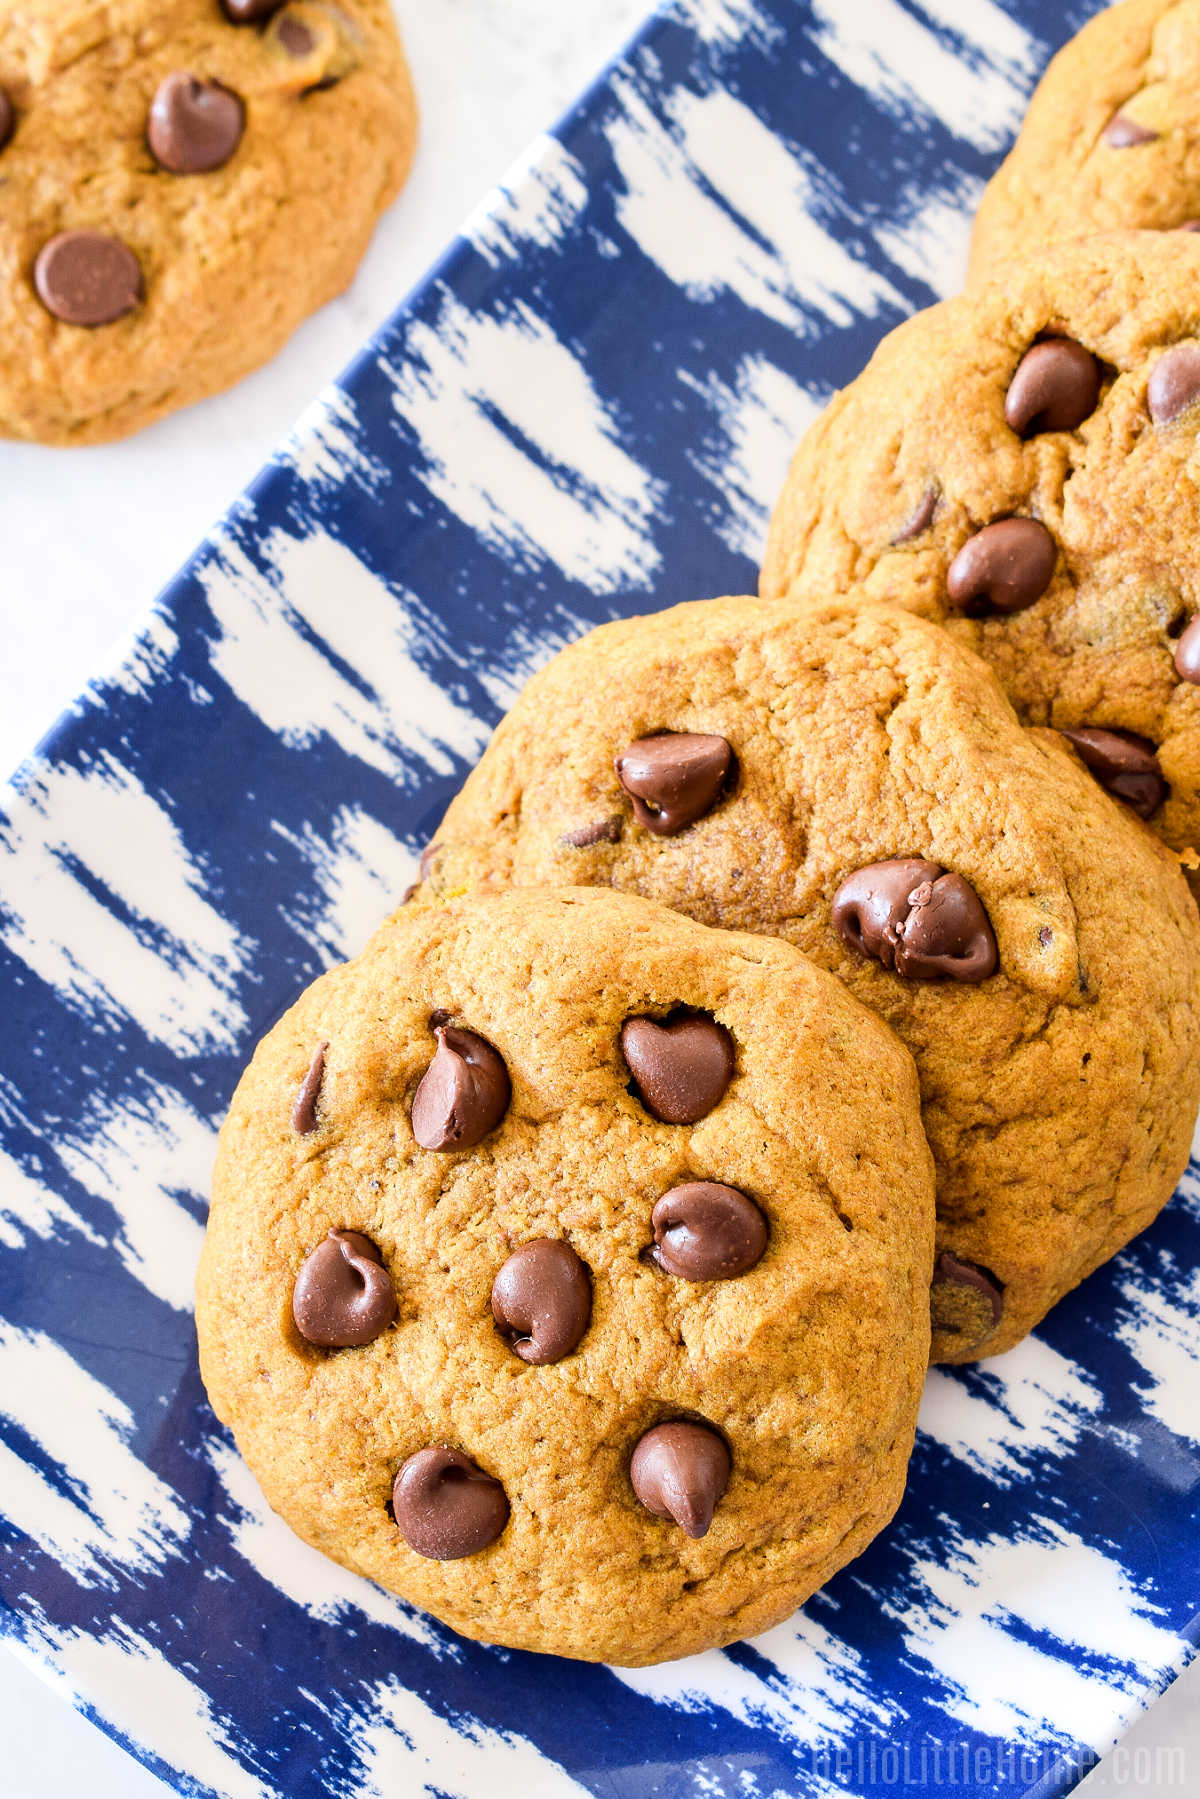 A tray of the Chocolate Chip Pumpkin Cookies.